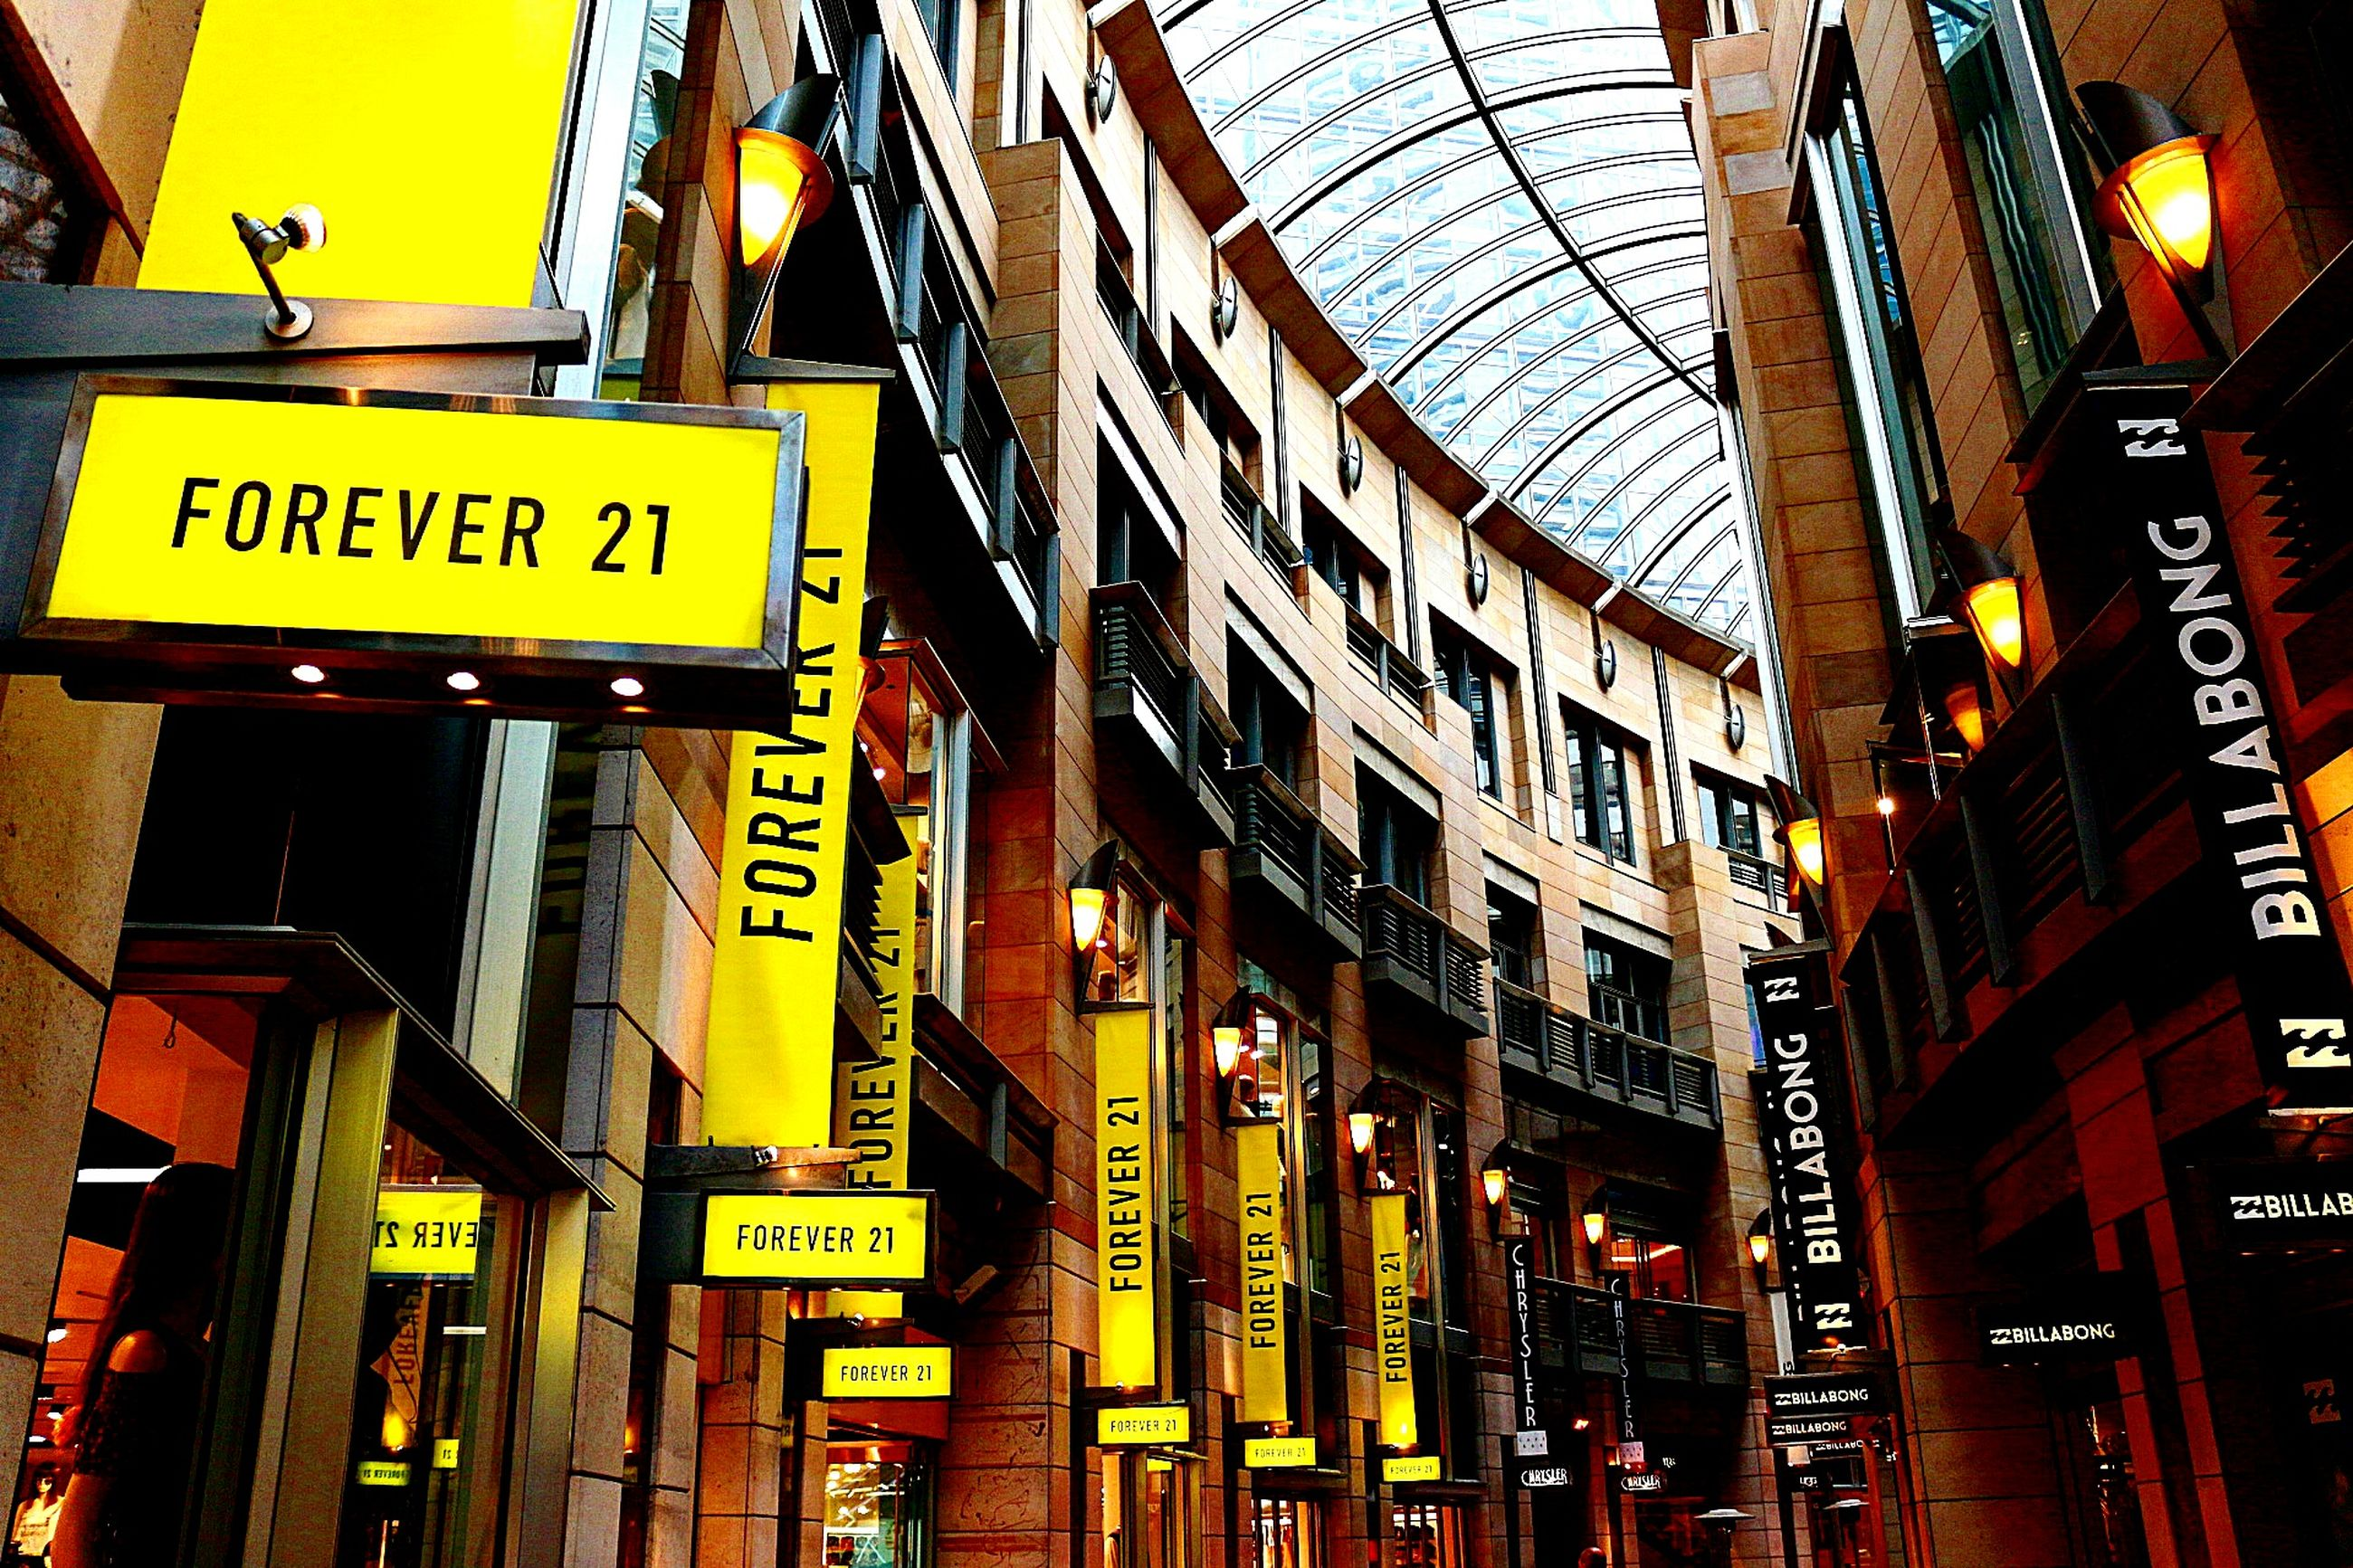 text, western script, communication, architecture, built structure, information sign, city, building exterior, illuminated, sign, road sign, guidance, low angle view, non-western script, yellow, information, arrow sign, neon, variation, shop, skyscraper, commercial sign, advertisement, outdoors, signboard, urban skyline, city life